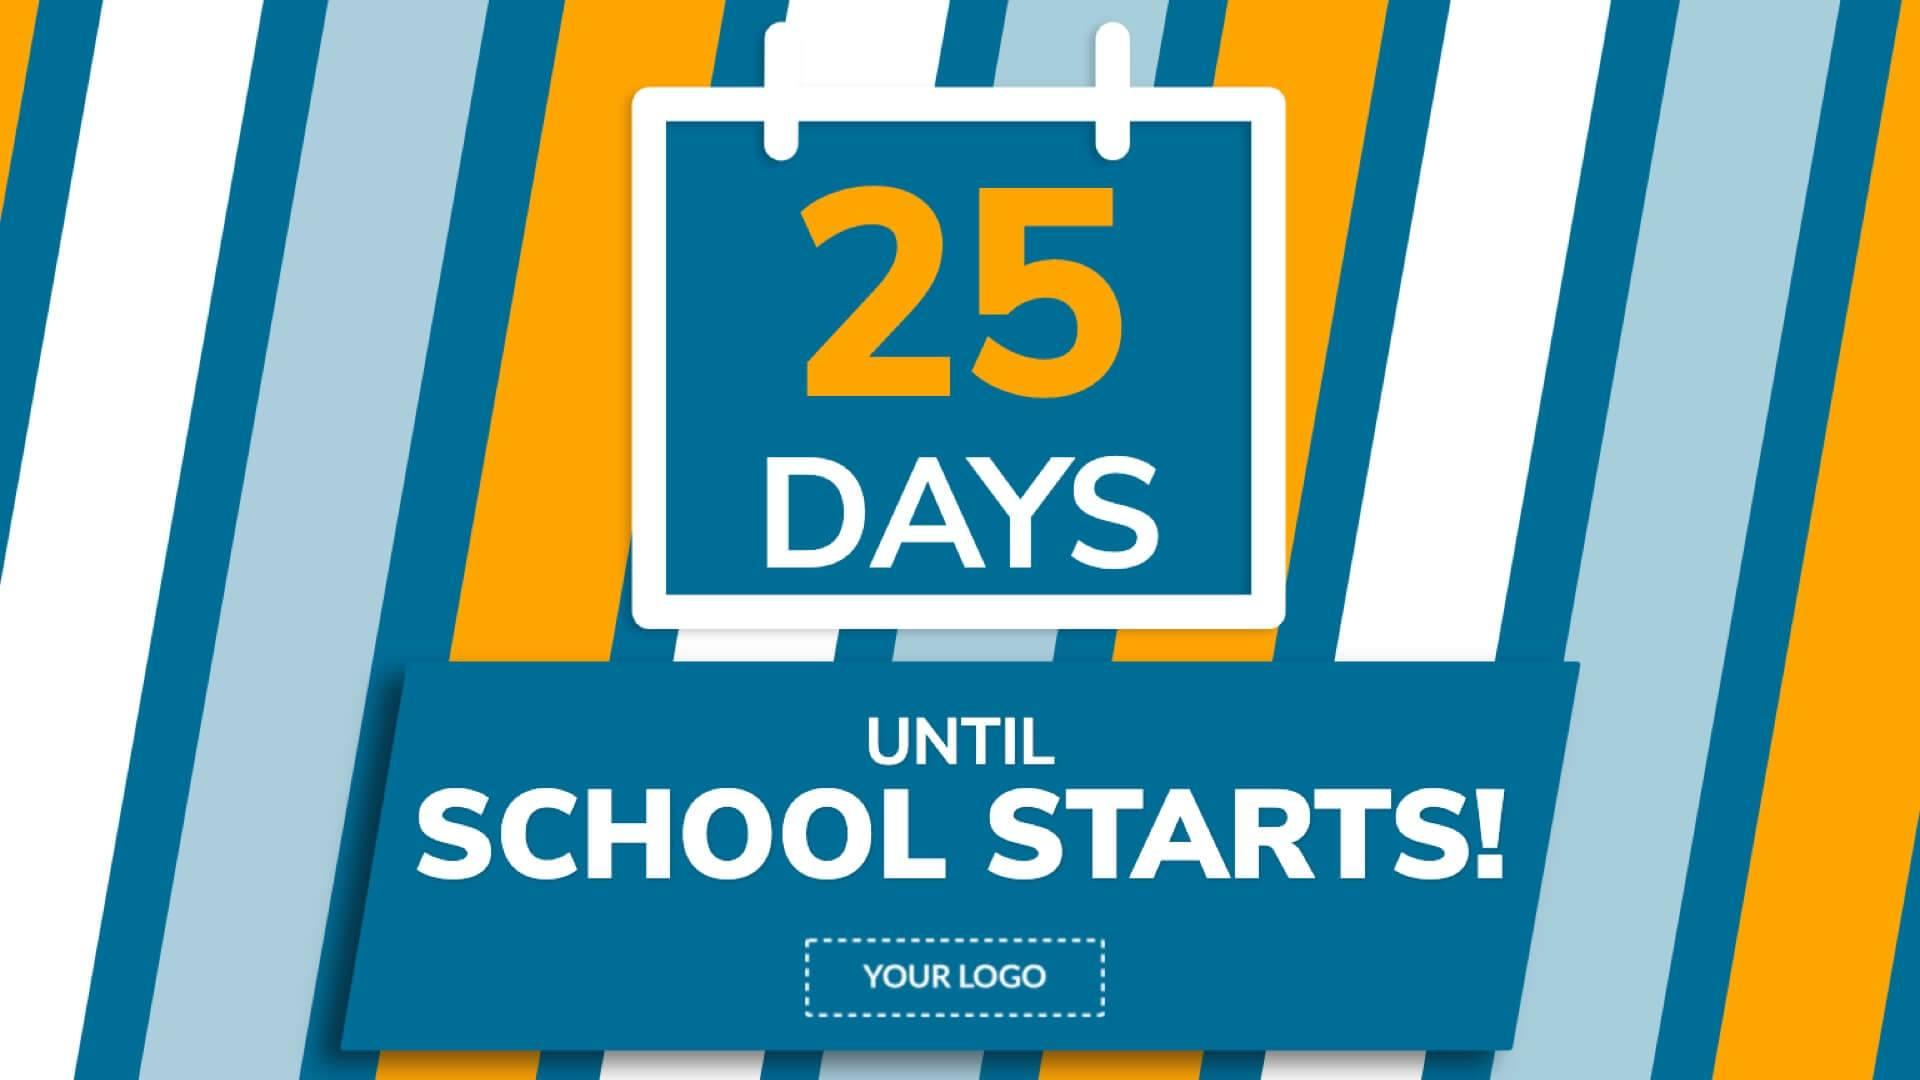 Back to School Countdown Digital Signage Template